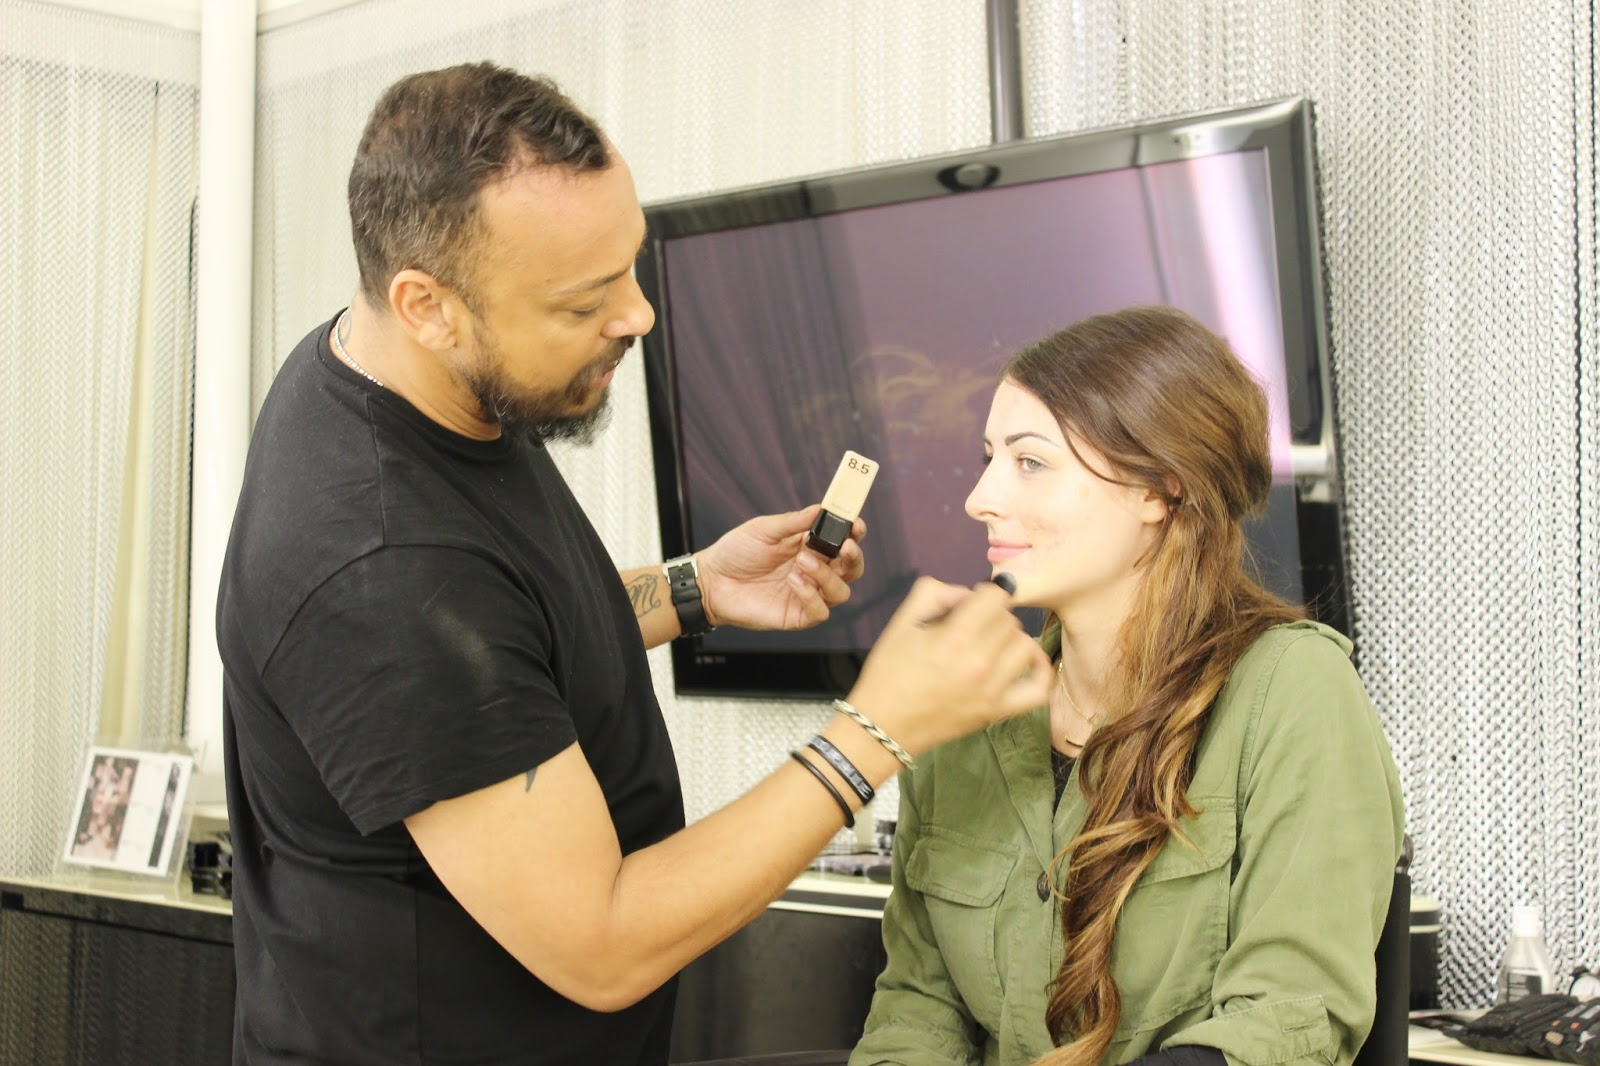 Illamasqua skin sculpting course - contouring in progress